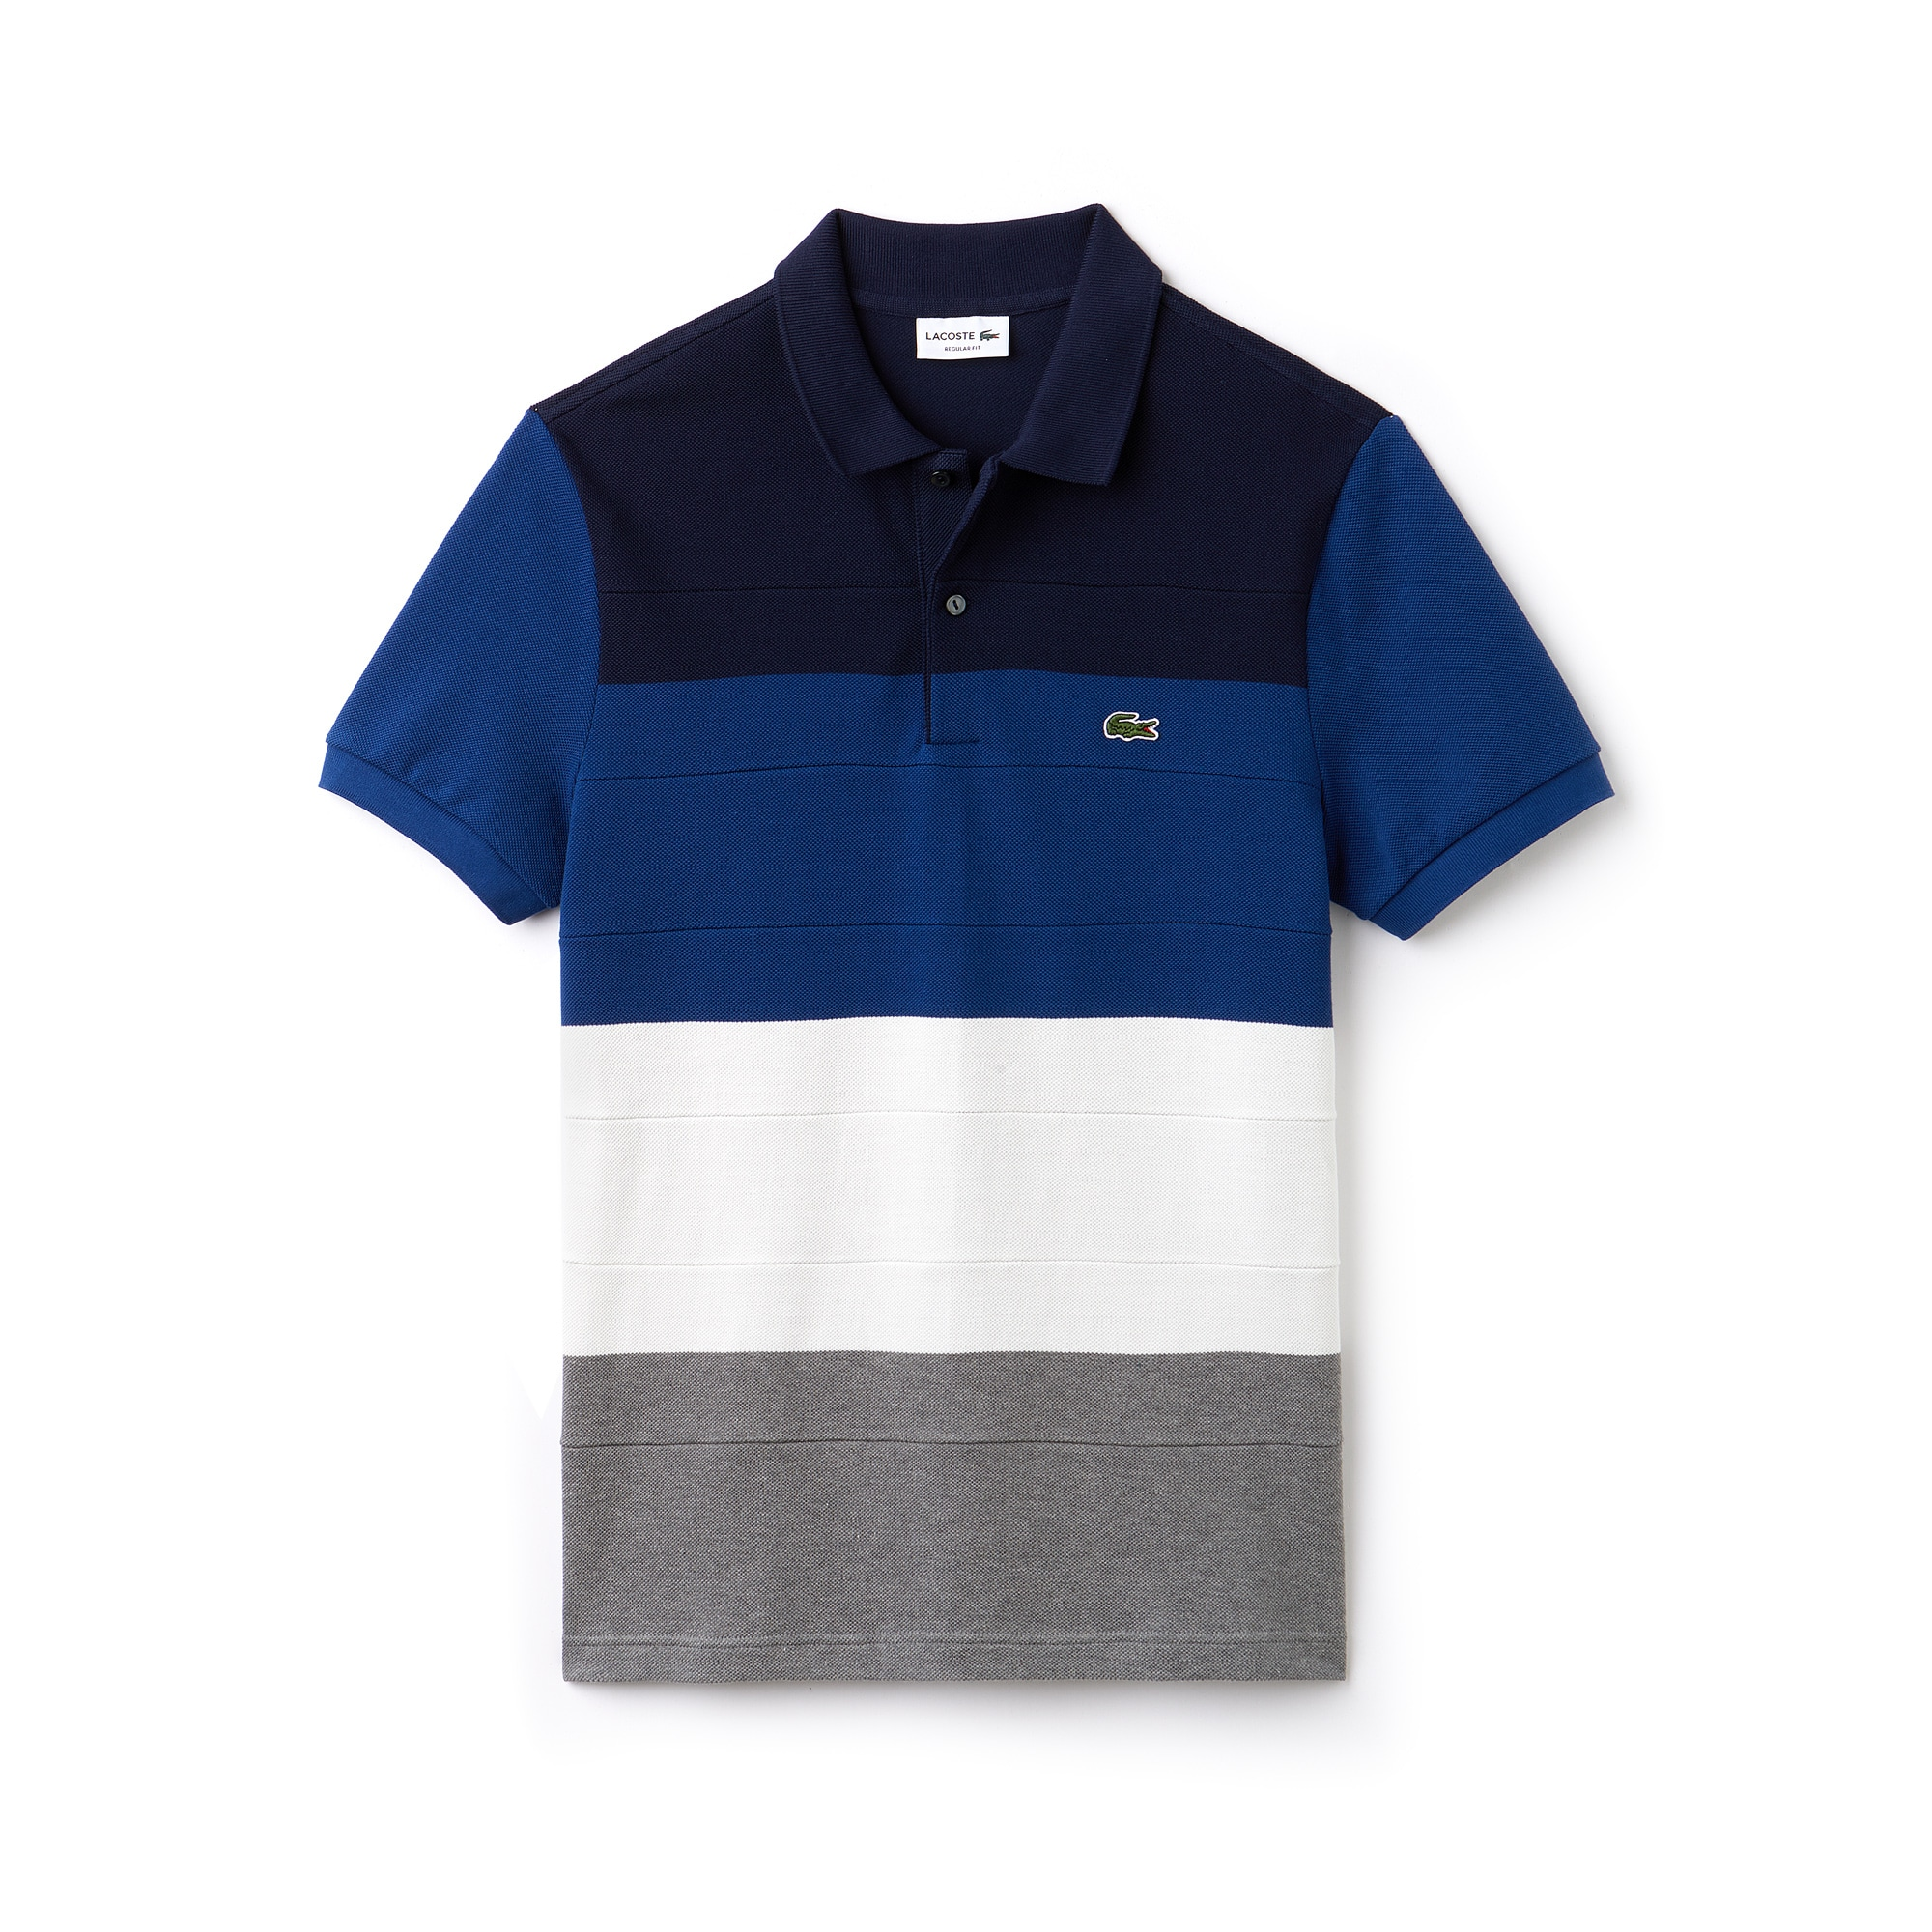 Men's Lacoste Pants Shirts Clothing And Polos Sportswear BqBr5